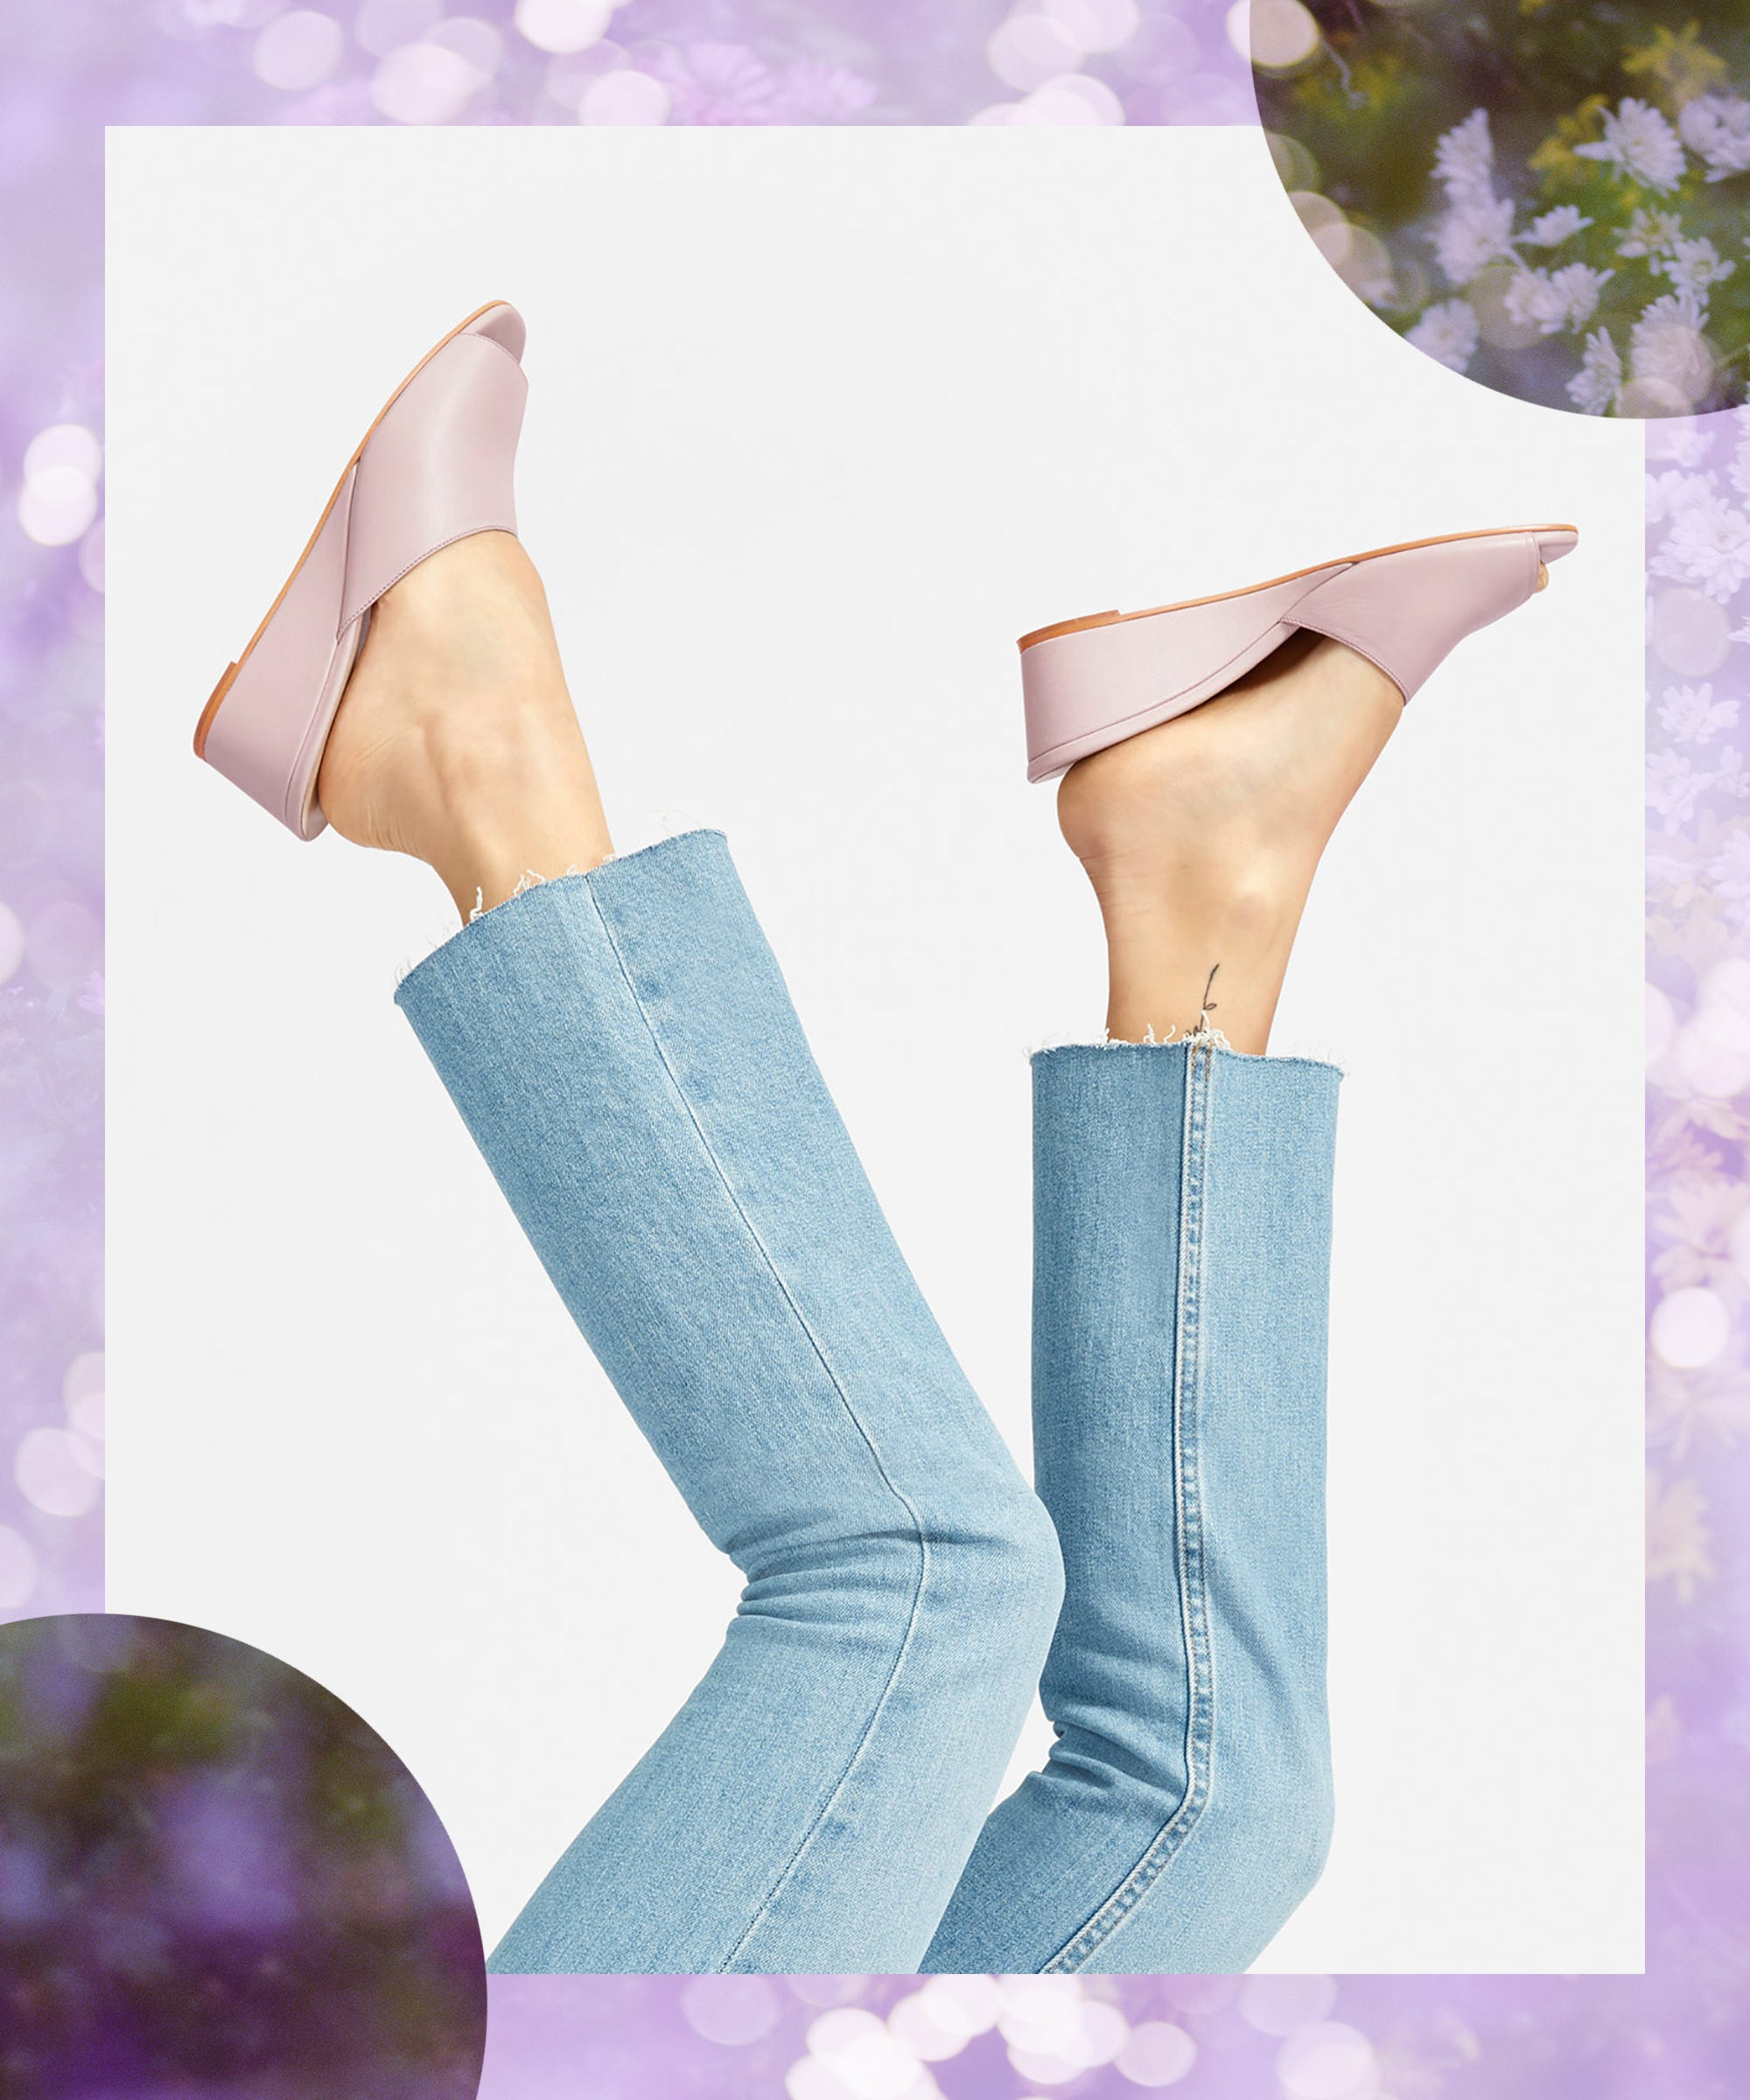 The Indispensable Summer Shoe Style That Will Elevate Your Look